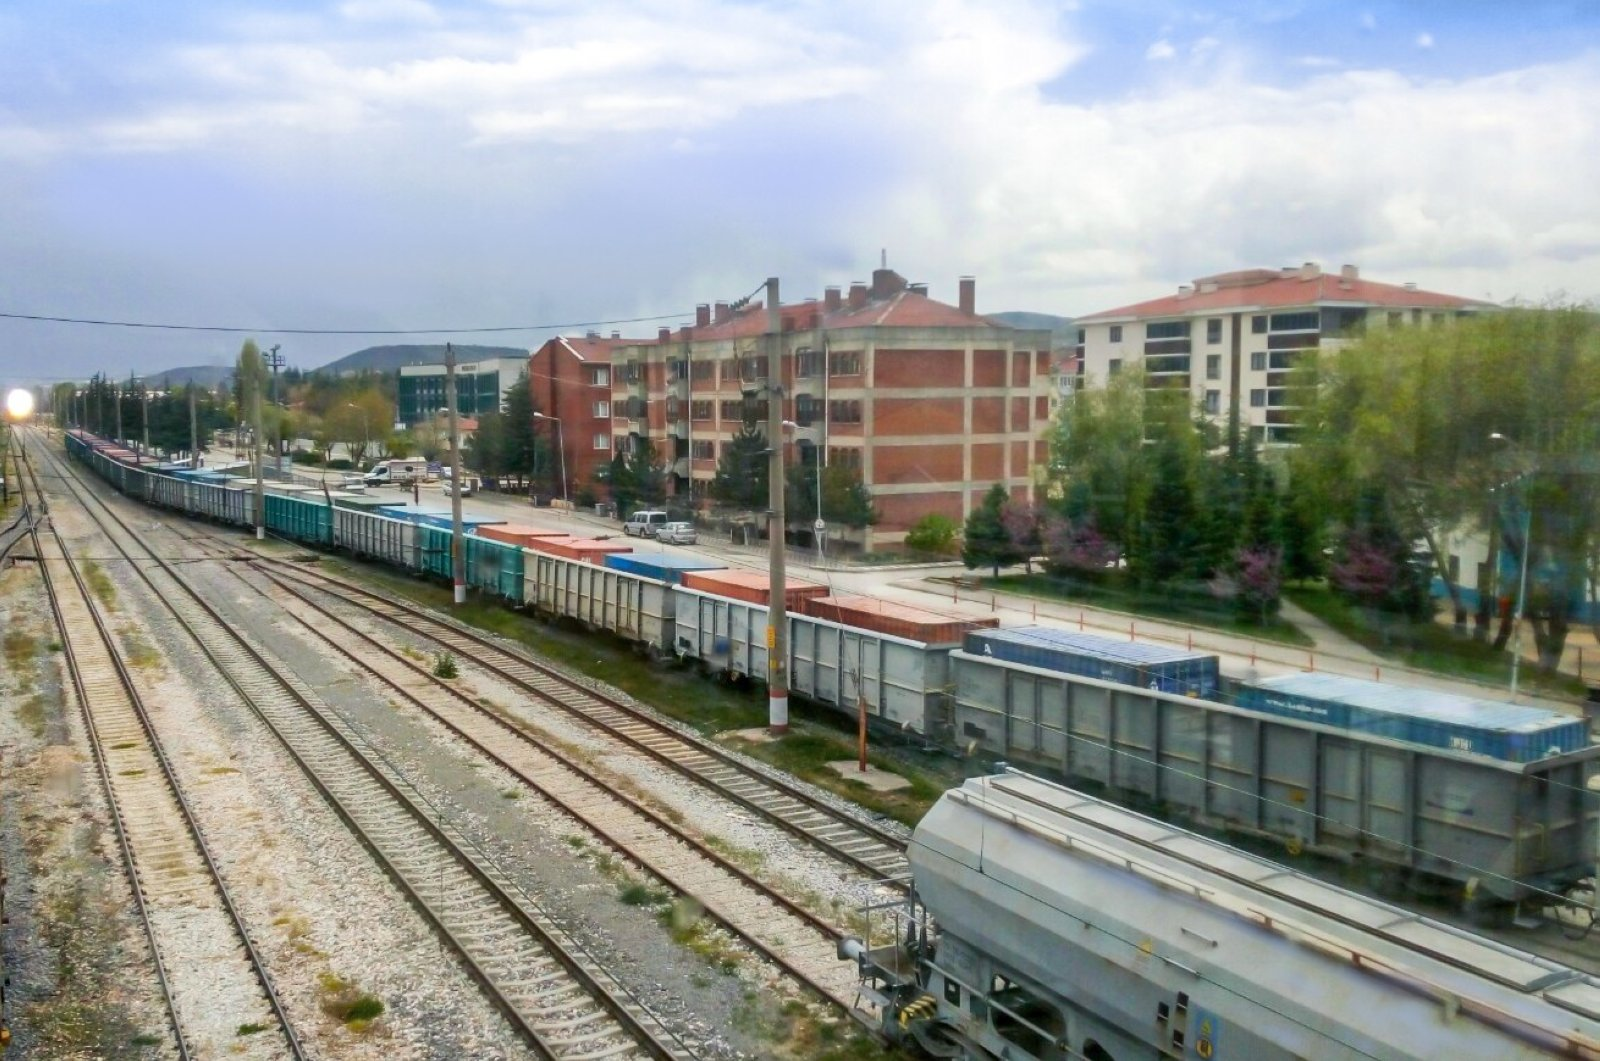 A freight train departs from Turkey's Bilecik for Kyrgyzstan's Osh, April 30, 2020. (IHA Photo)